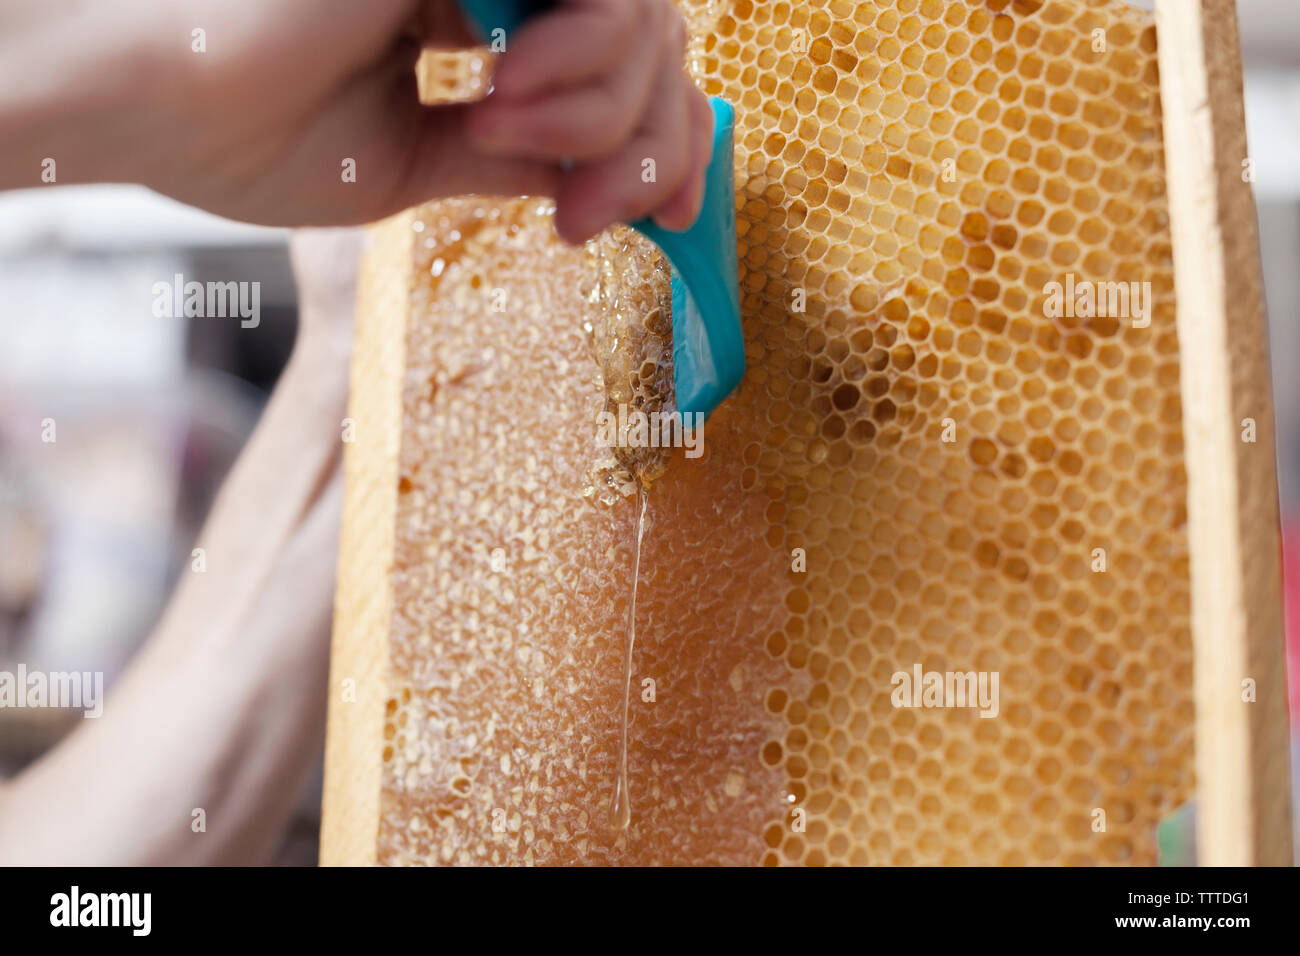 Close-up of hand cleaning beehive frame - Stock Image